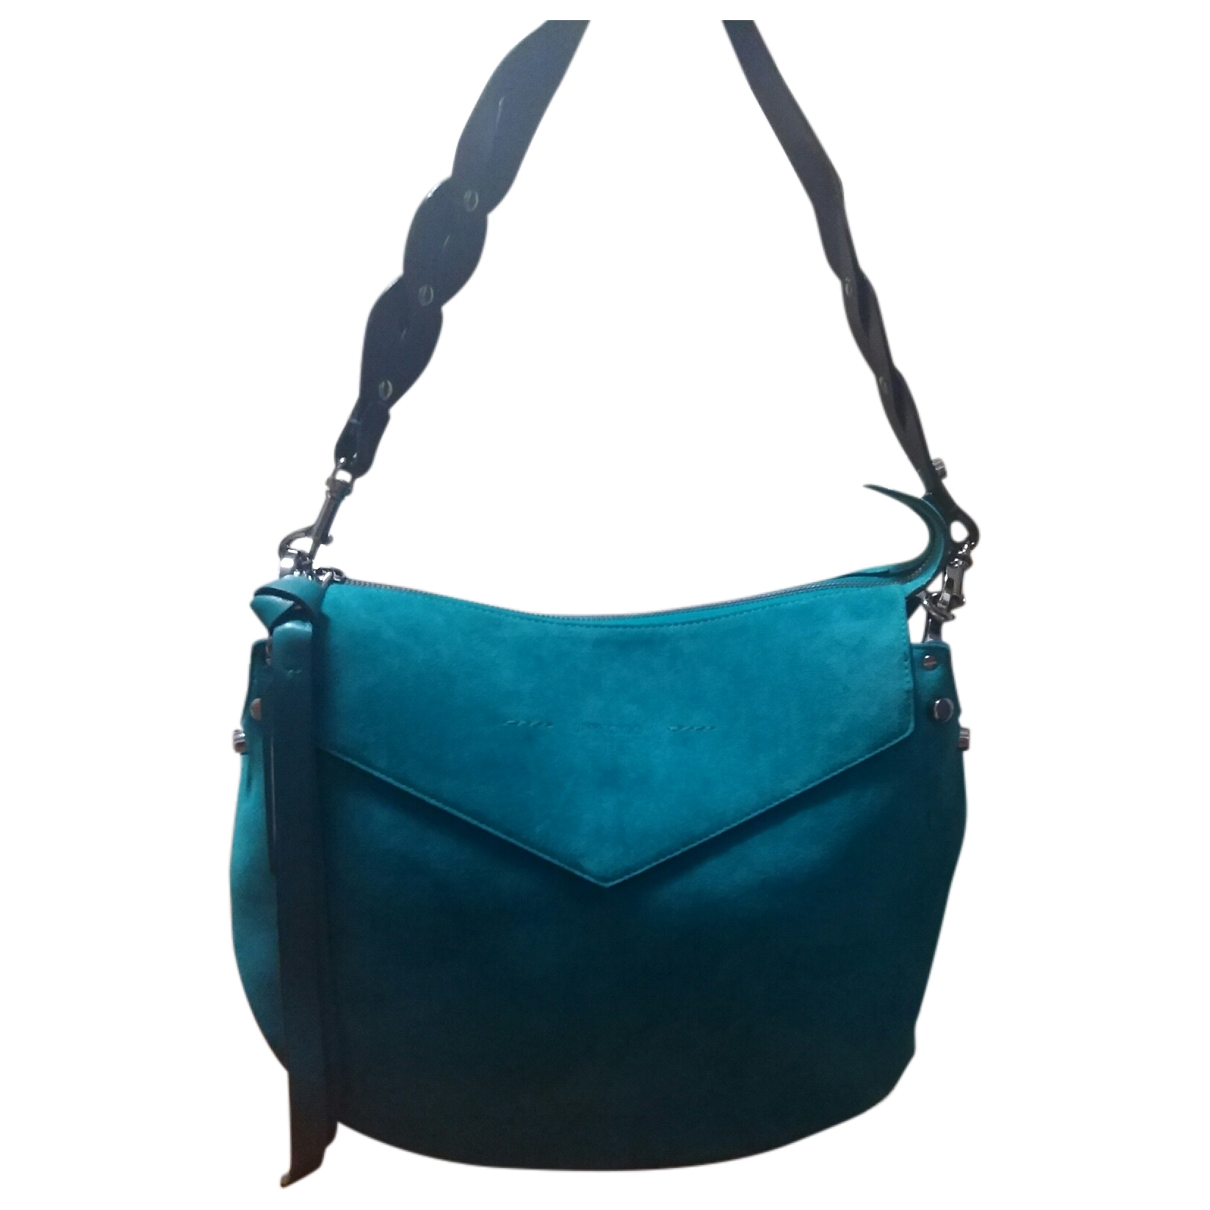 Jimmy Choo \N Turquoise Suede handbag for Women \N